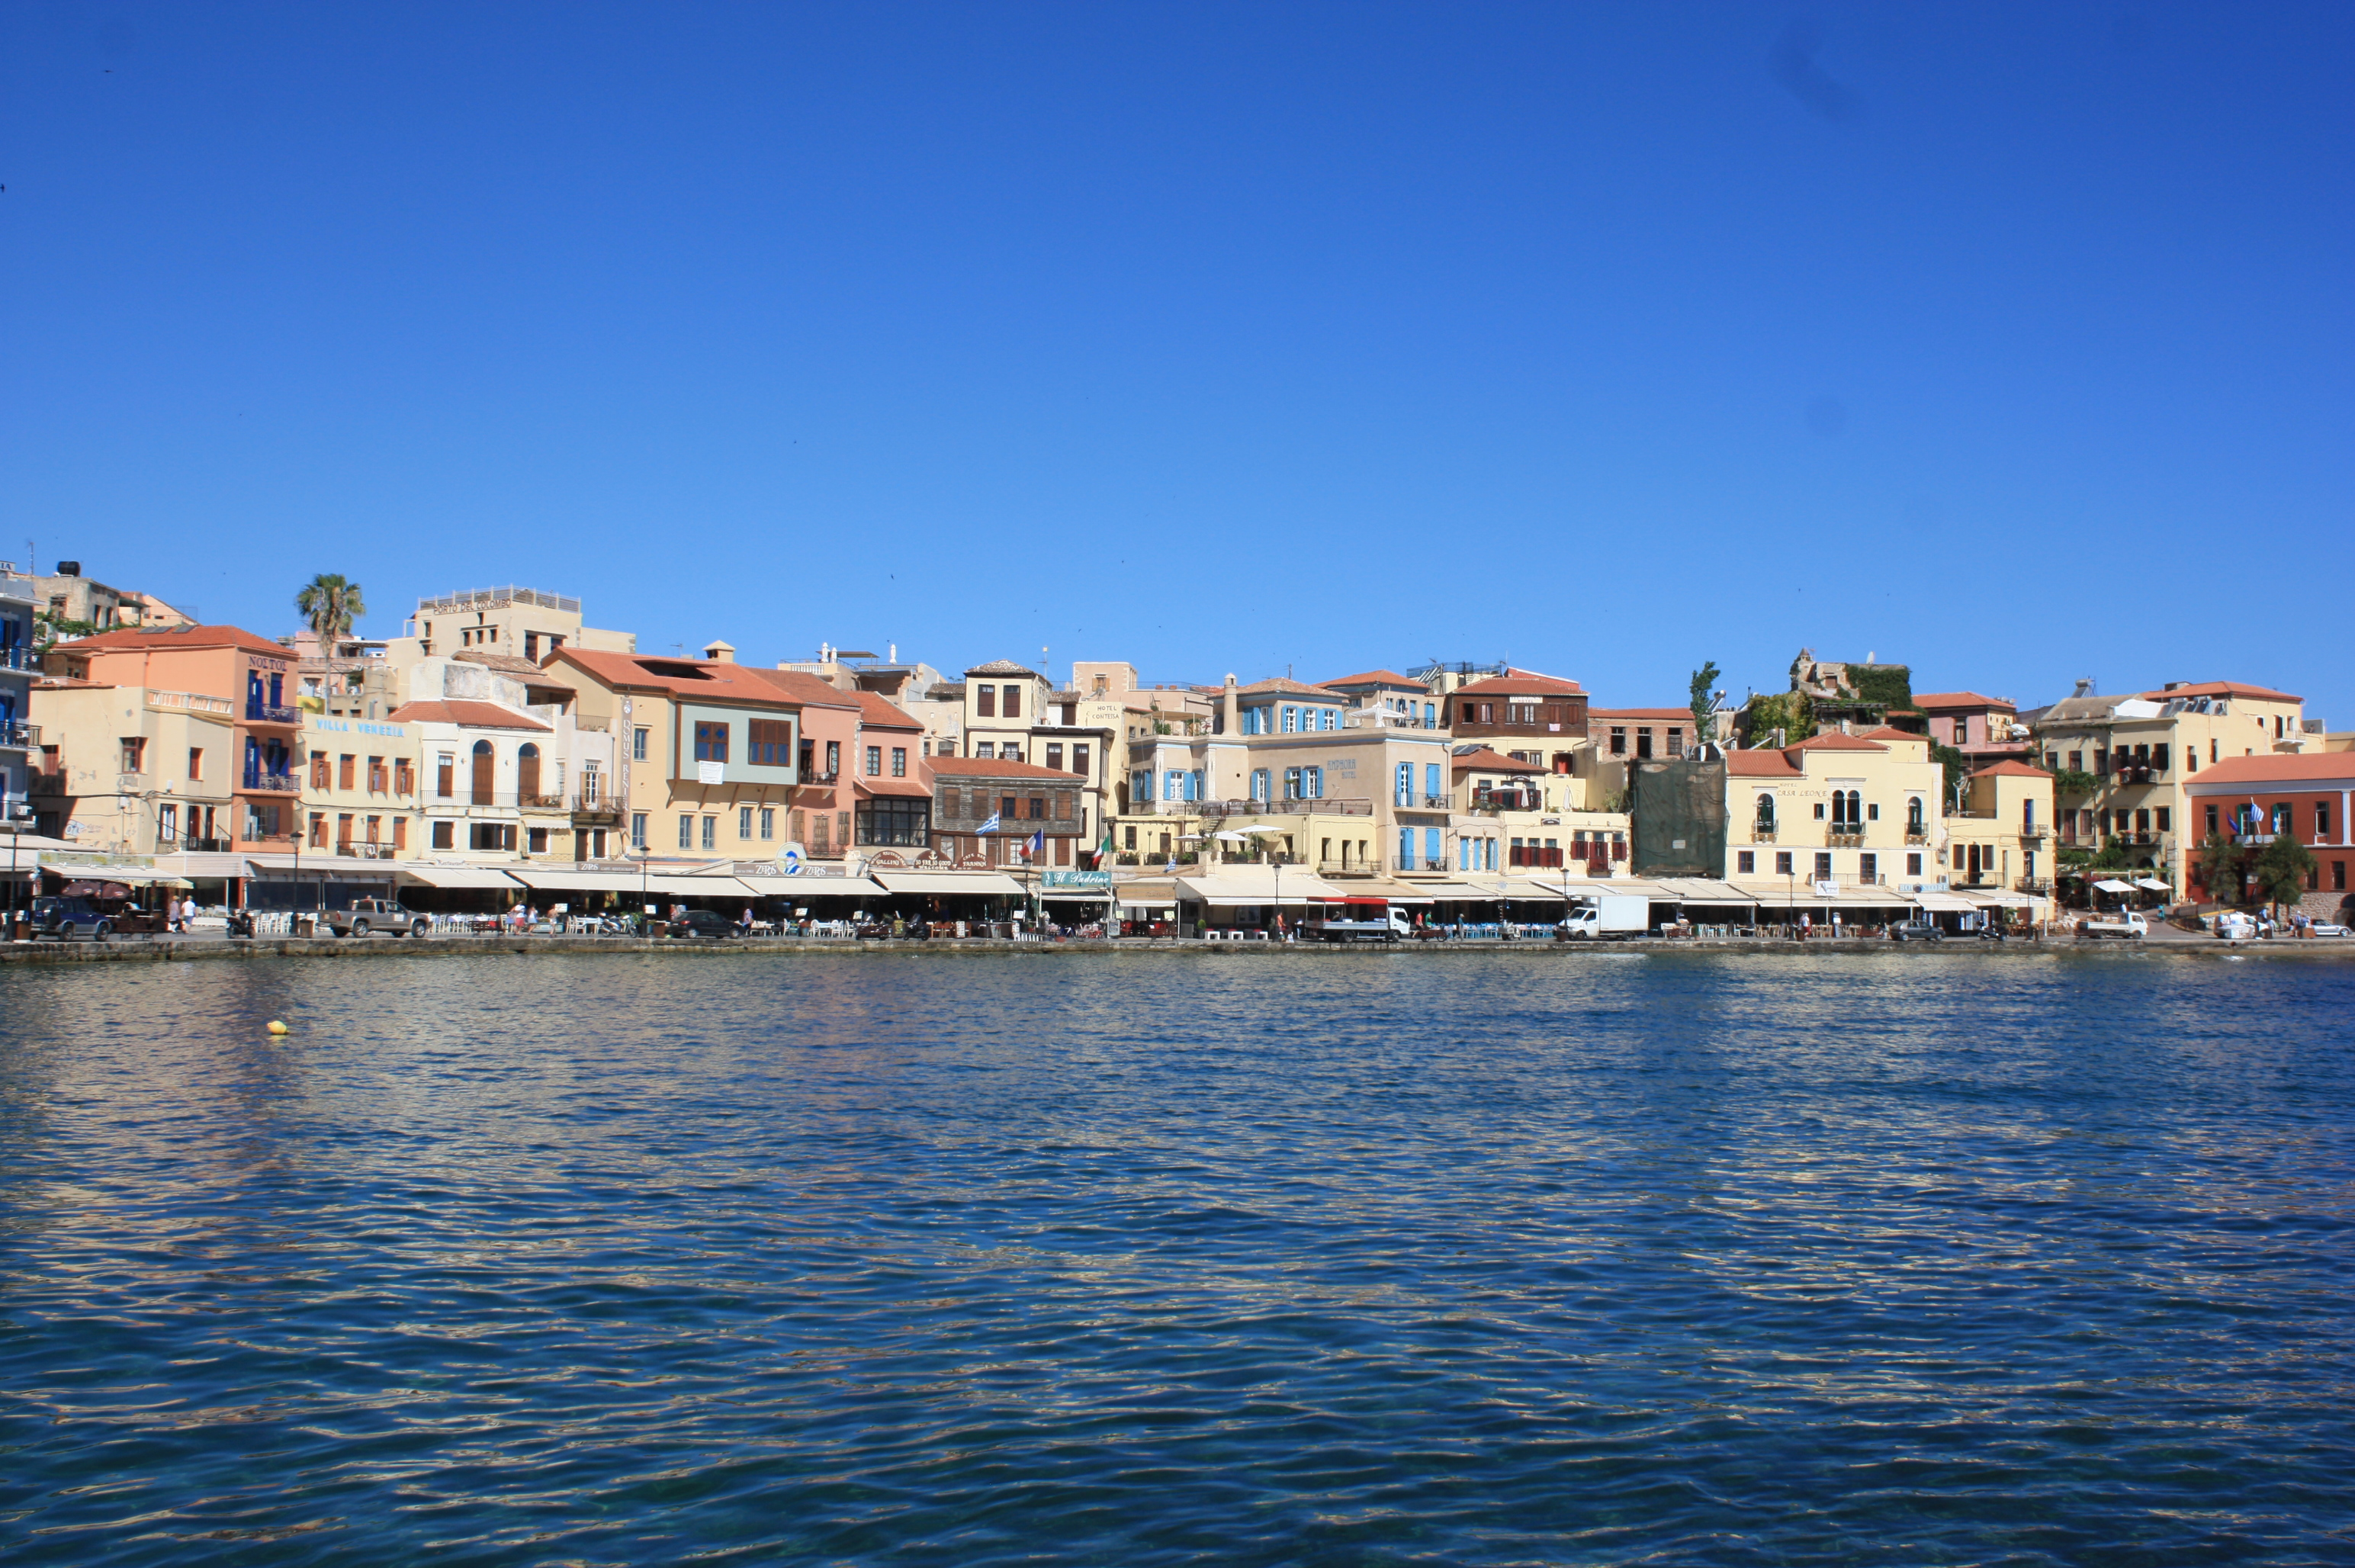 Venetian Harbor in Chania, Greece